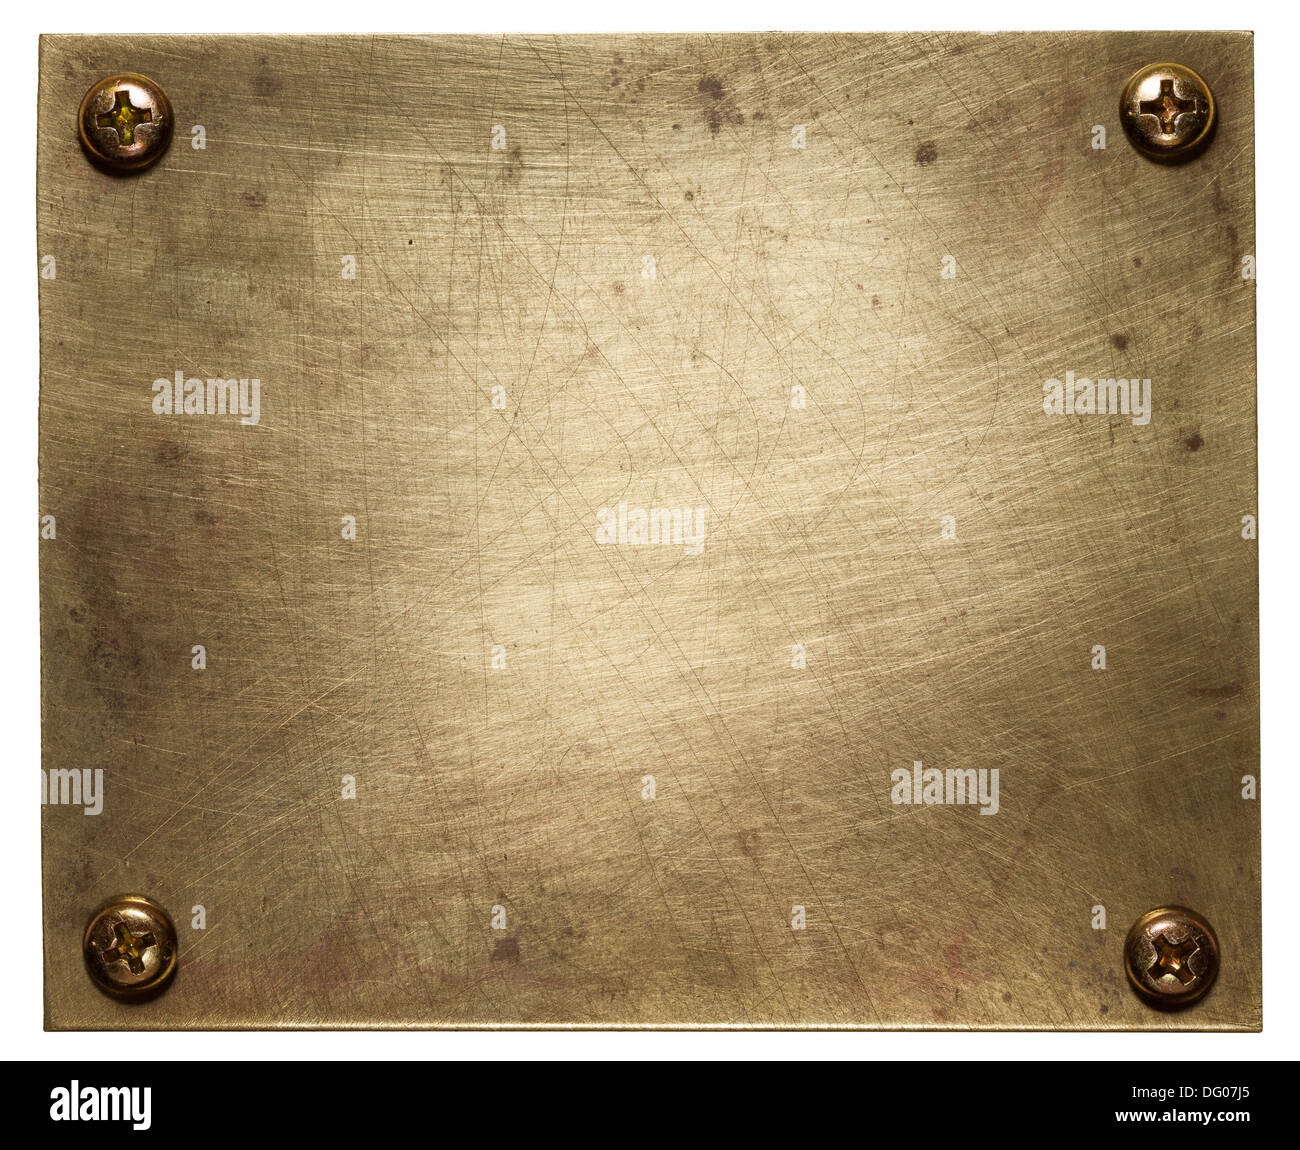 Brass plate texture, old metal background. - Stock Image